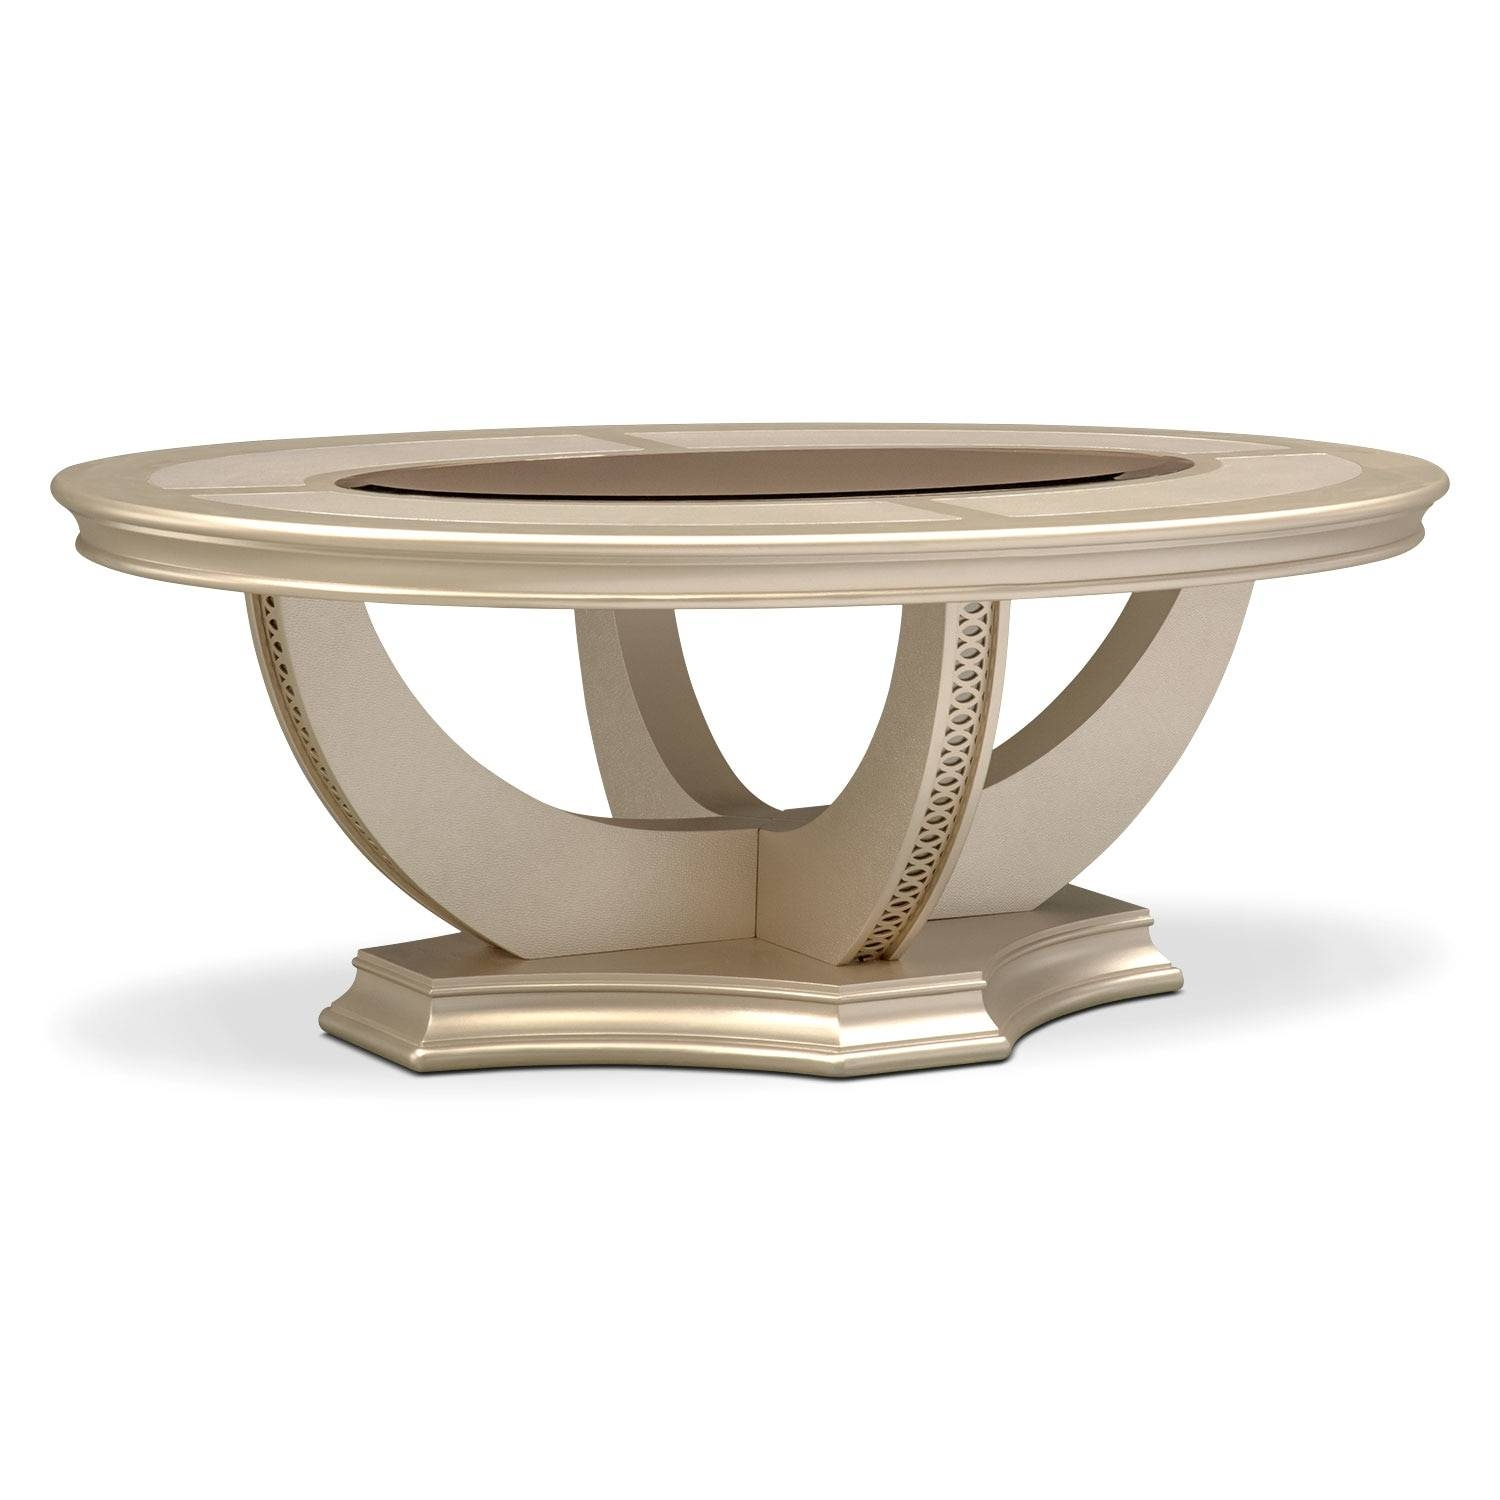 Coffee Tables | Living Room Tables | Value City Furniture With Beige Coffee Tables (View 6 of 30)